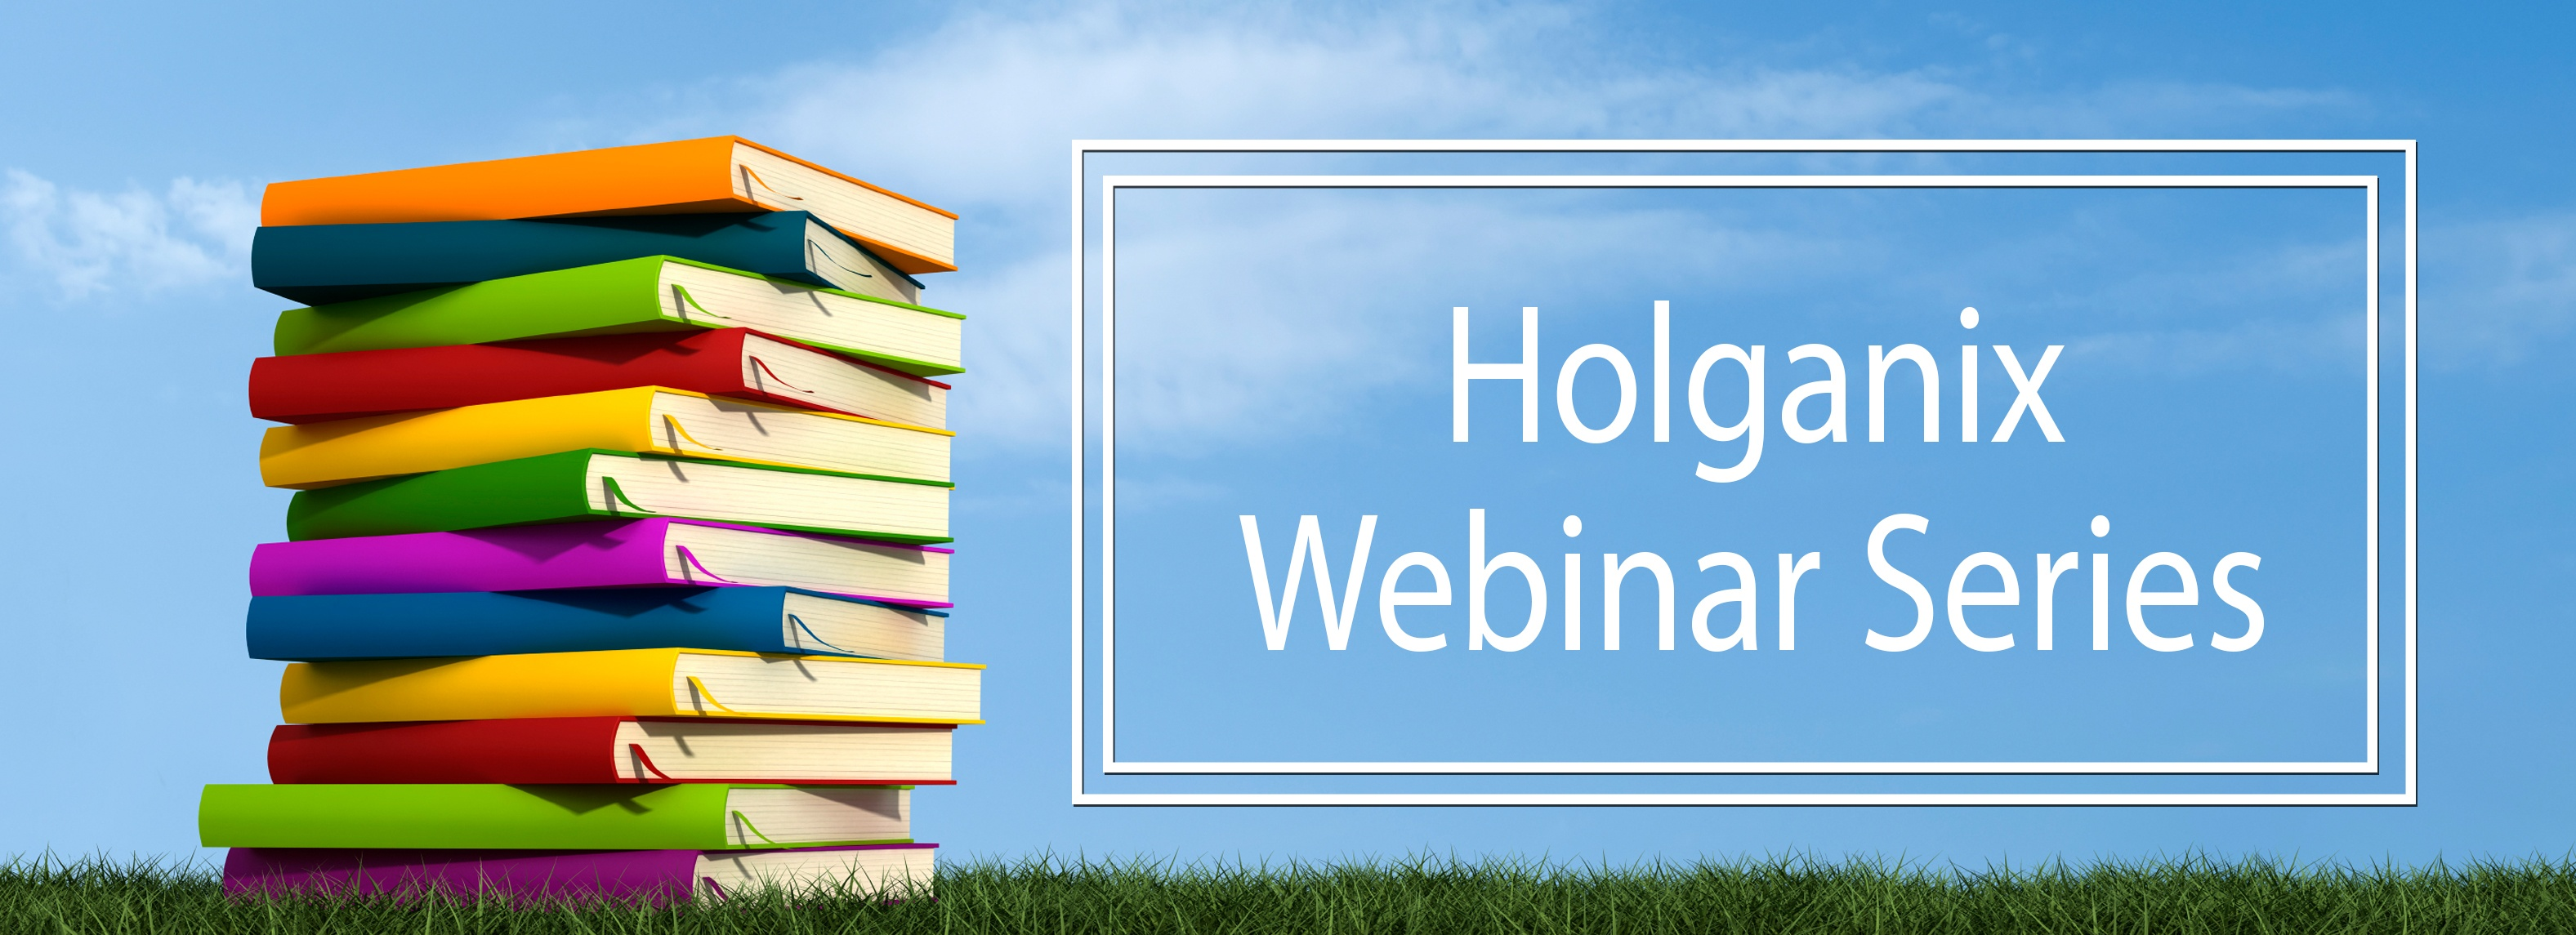 soil food web education. Learn more about soil science with Holganix